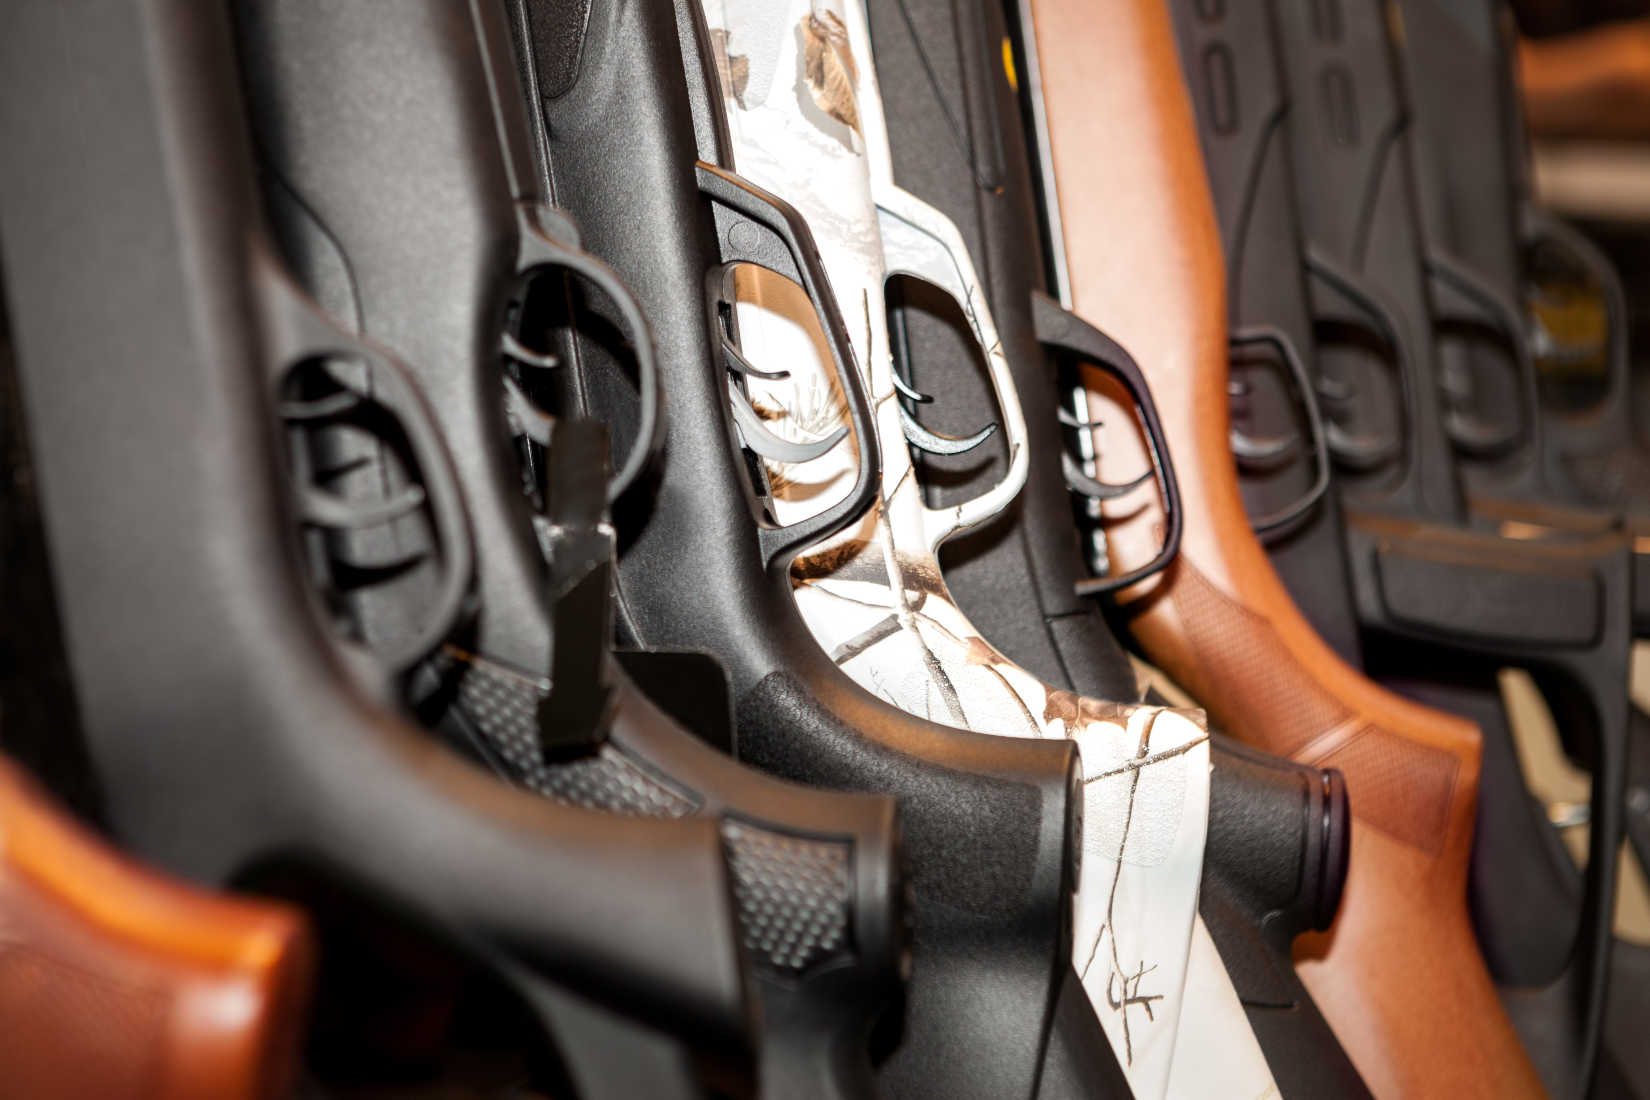 These Gun Manufacturers Have Fled Gun Control States in Search of Freedom